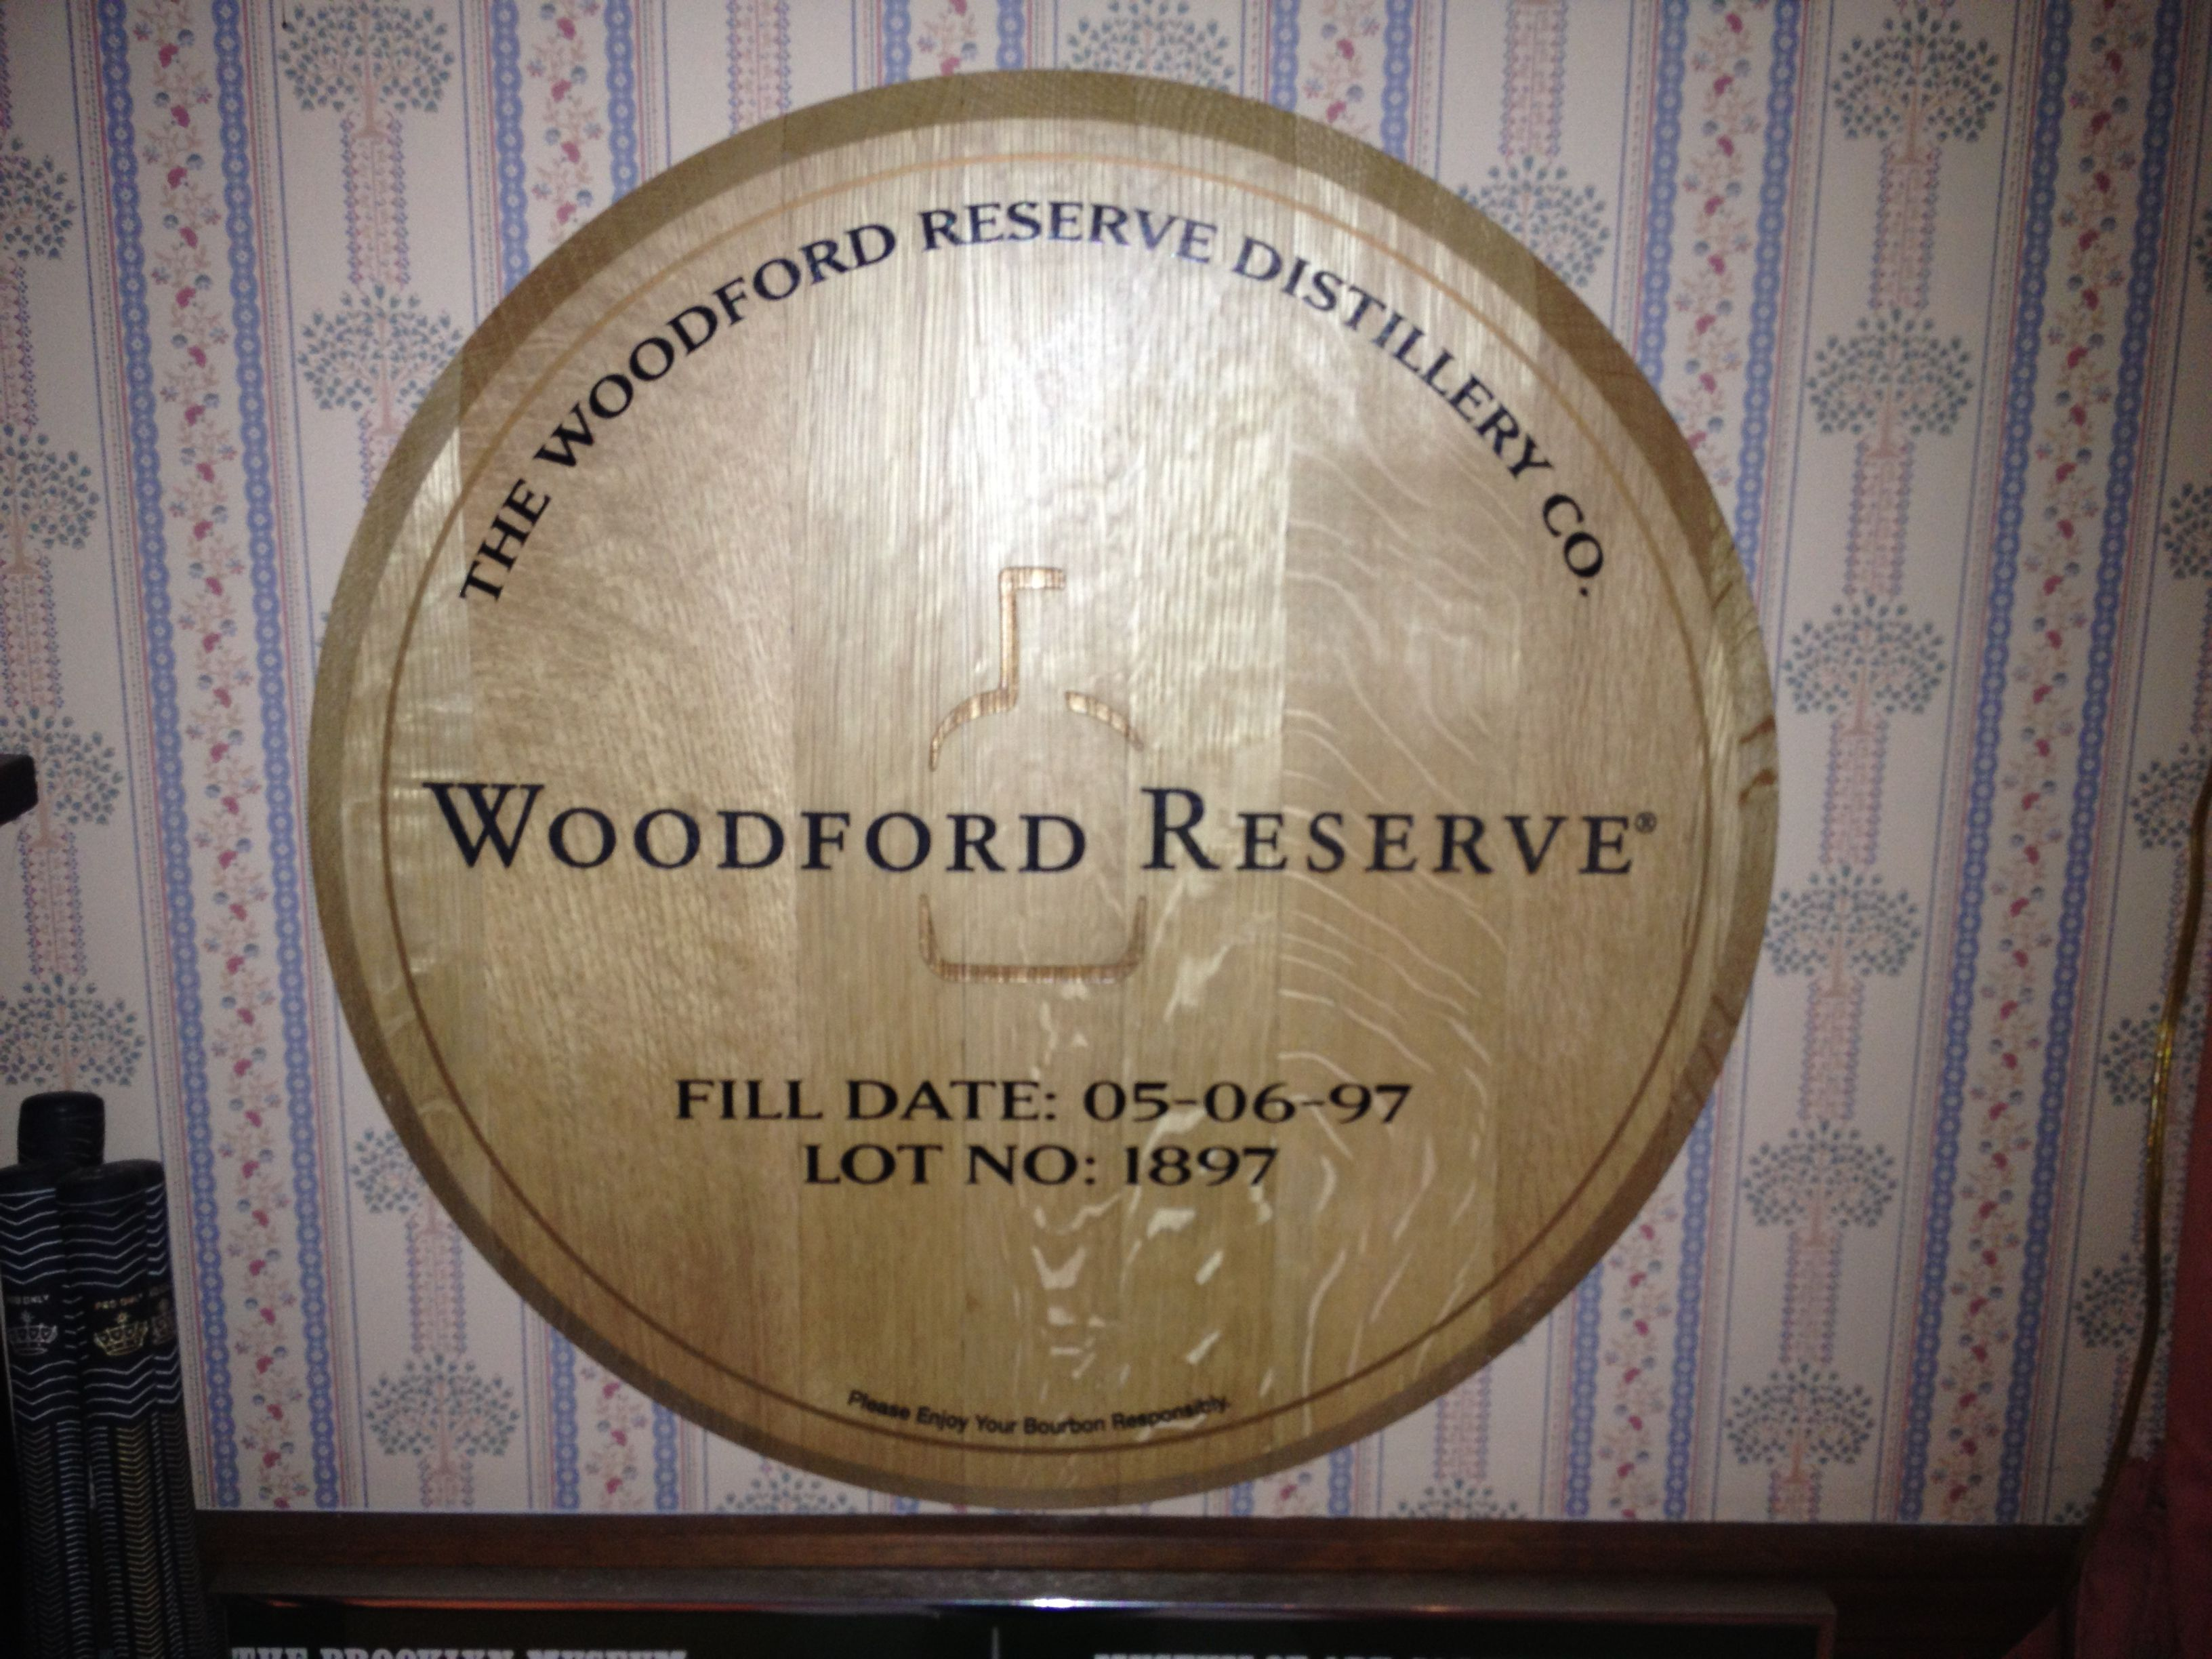 Woodford Reserve The Official Bourbon Of The Kentucky Derby Burned Oak Barrel Top 70 00 Man Cave Items Woodford Woodford Reserve